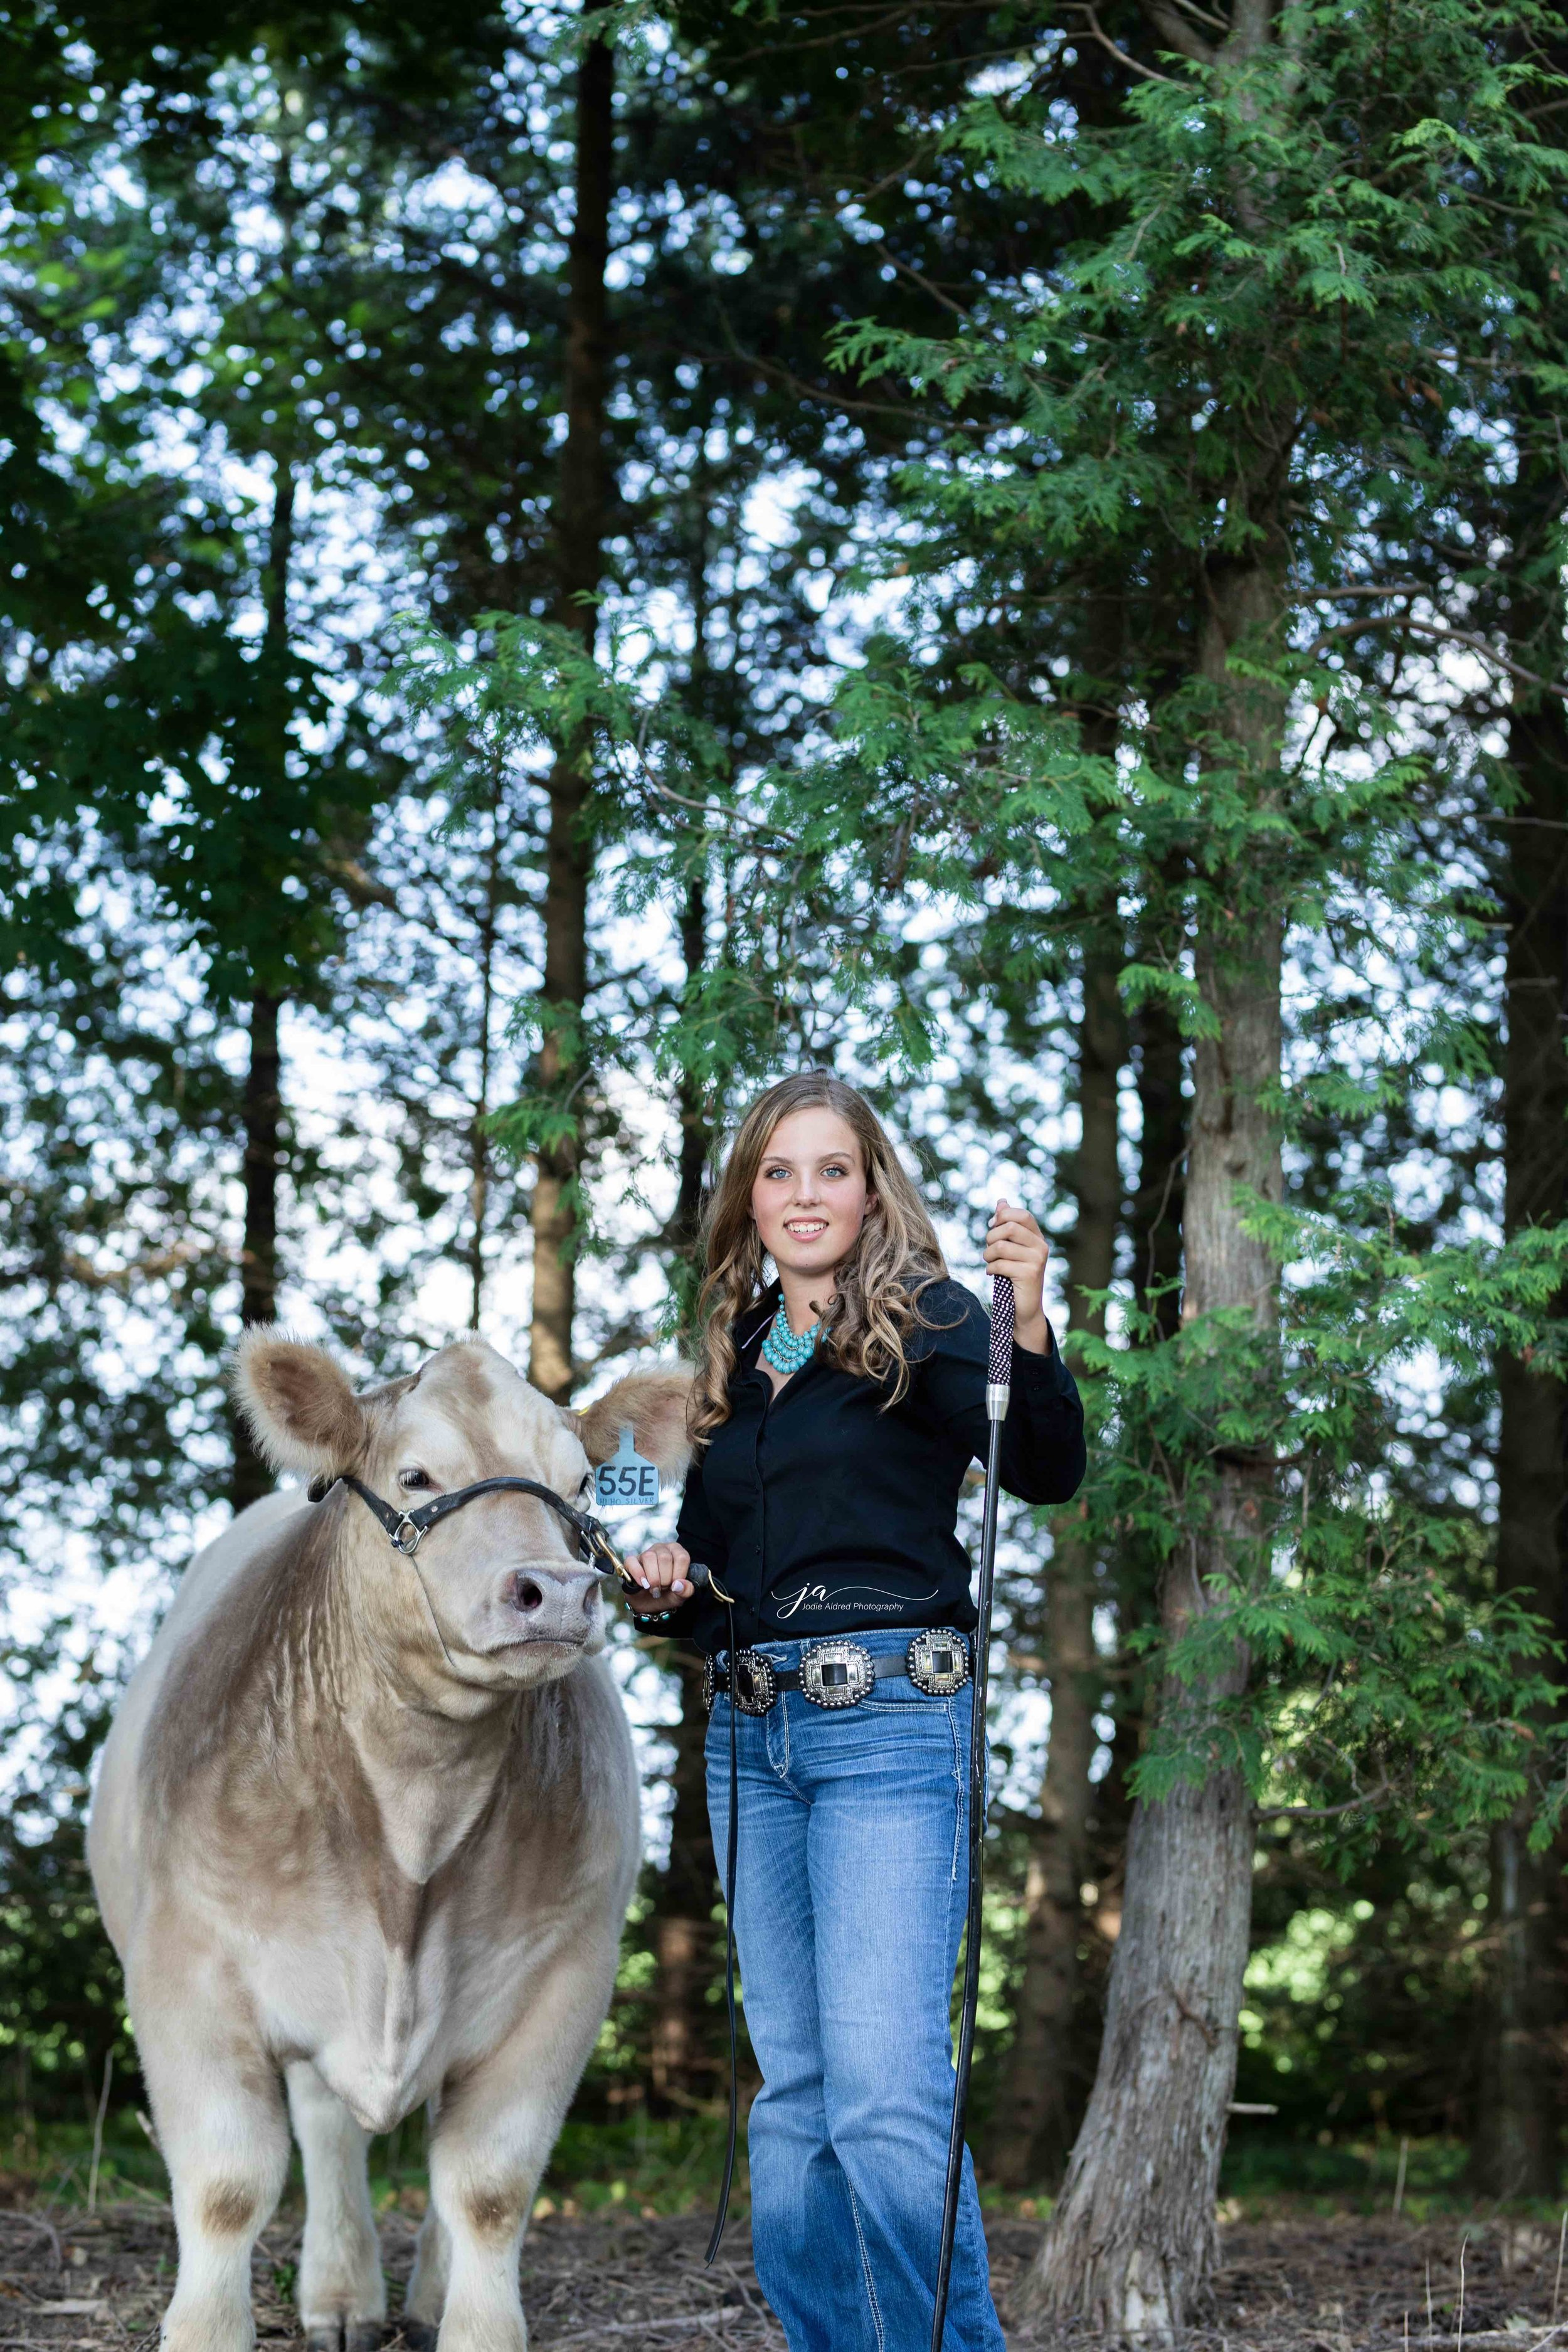 Jodie-Aldred-Photography-Chatham-Kent-Elgin-Middlesex-London-Ontario-Farm-Family-cattle.jpg